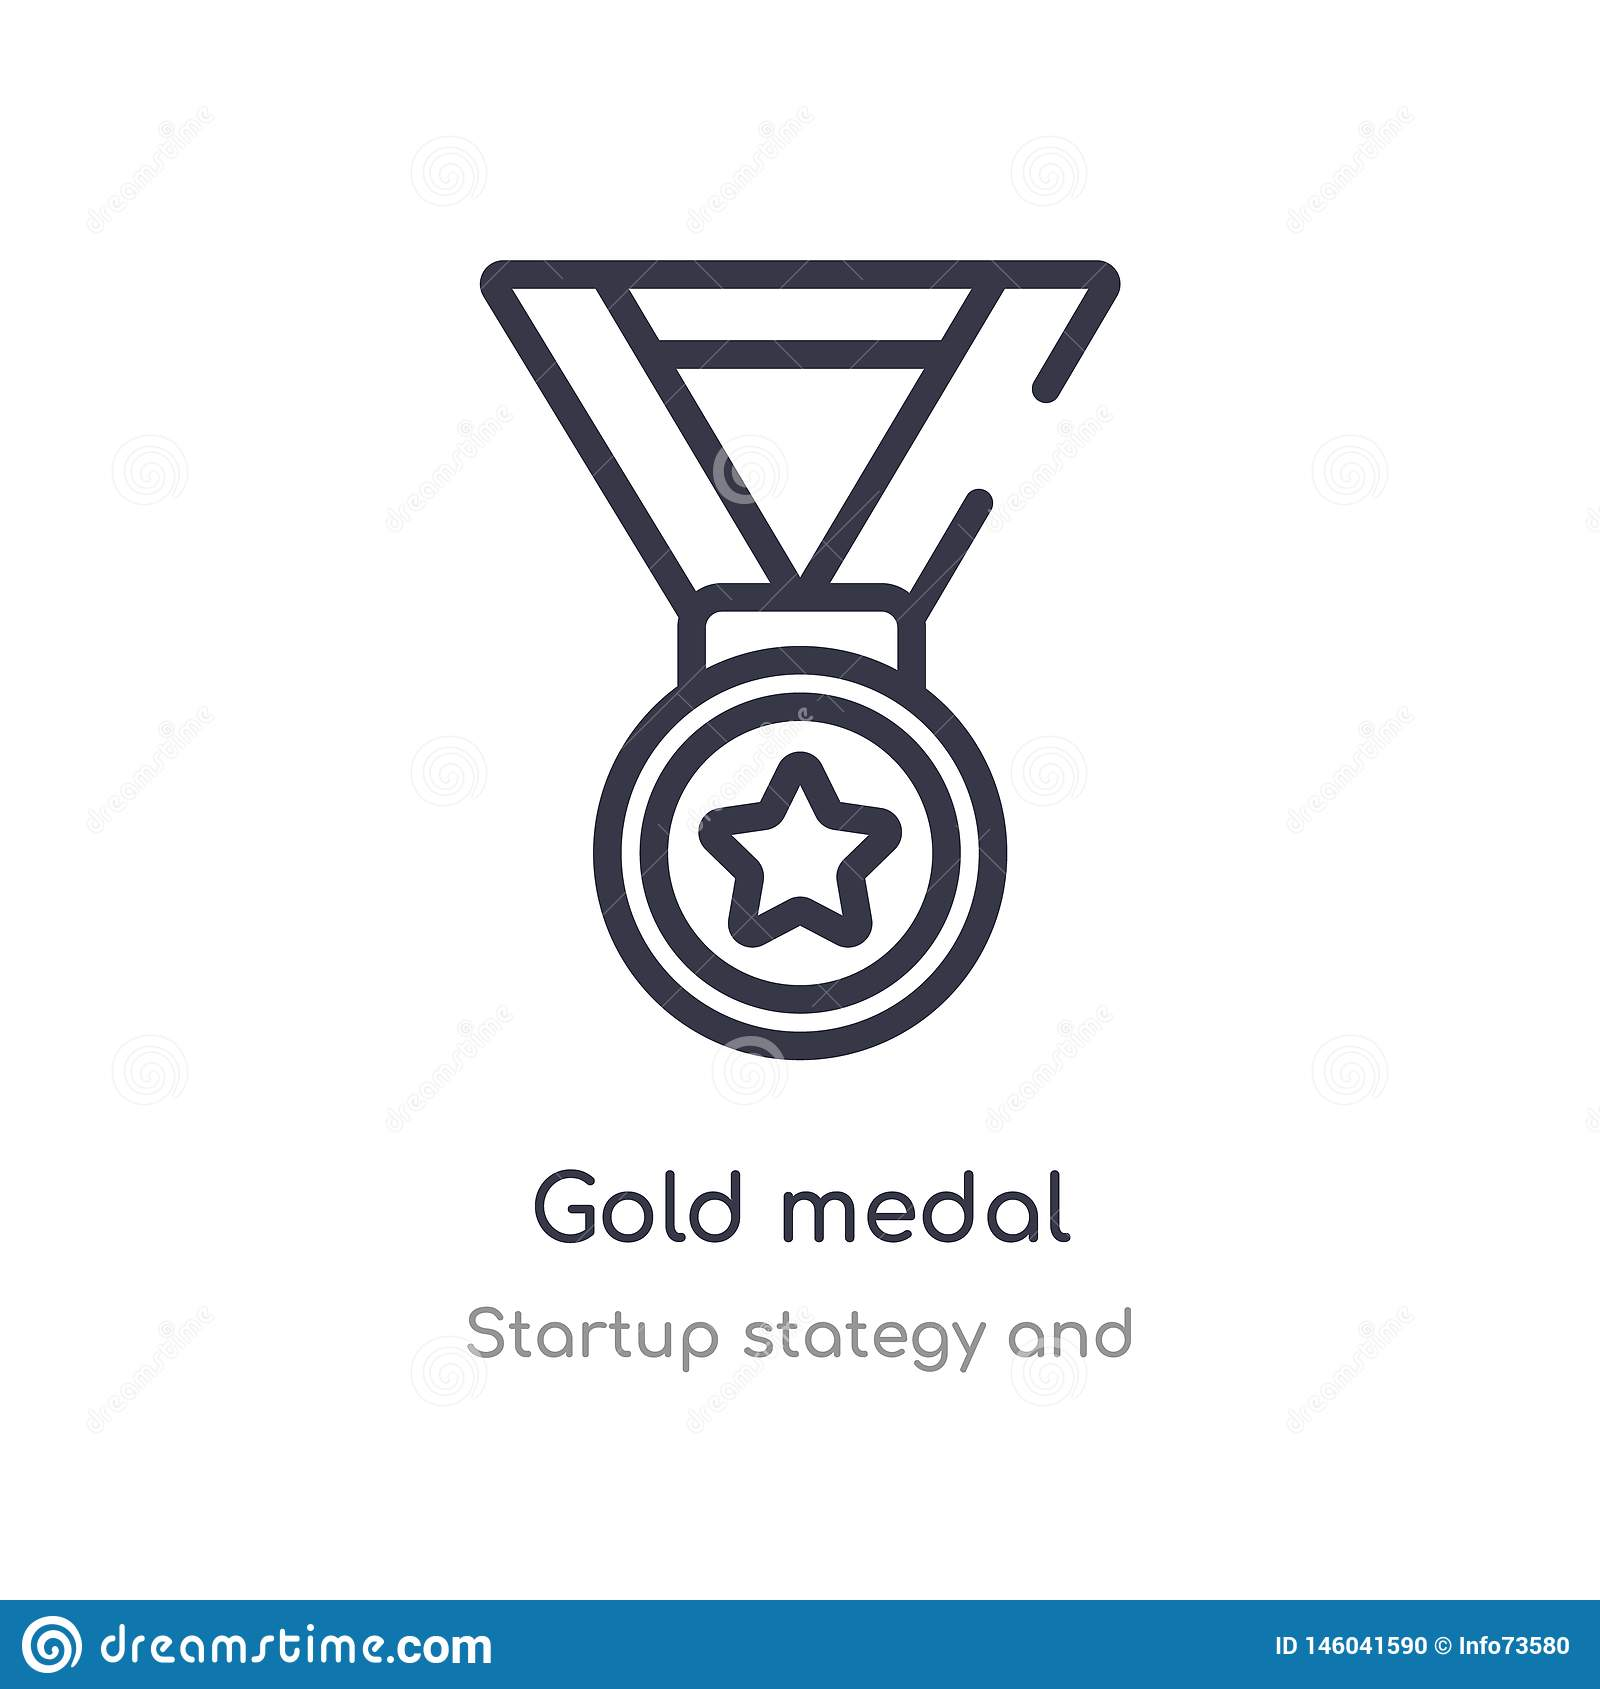 gold medal outline icon. isolated line vector illustration from startup stategy and collection. editable thin stroke gold medal